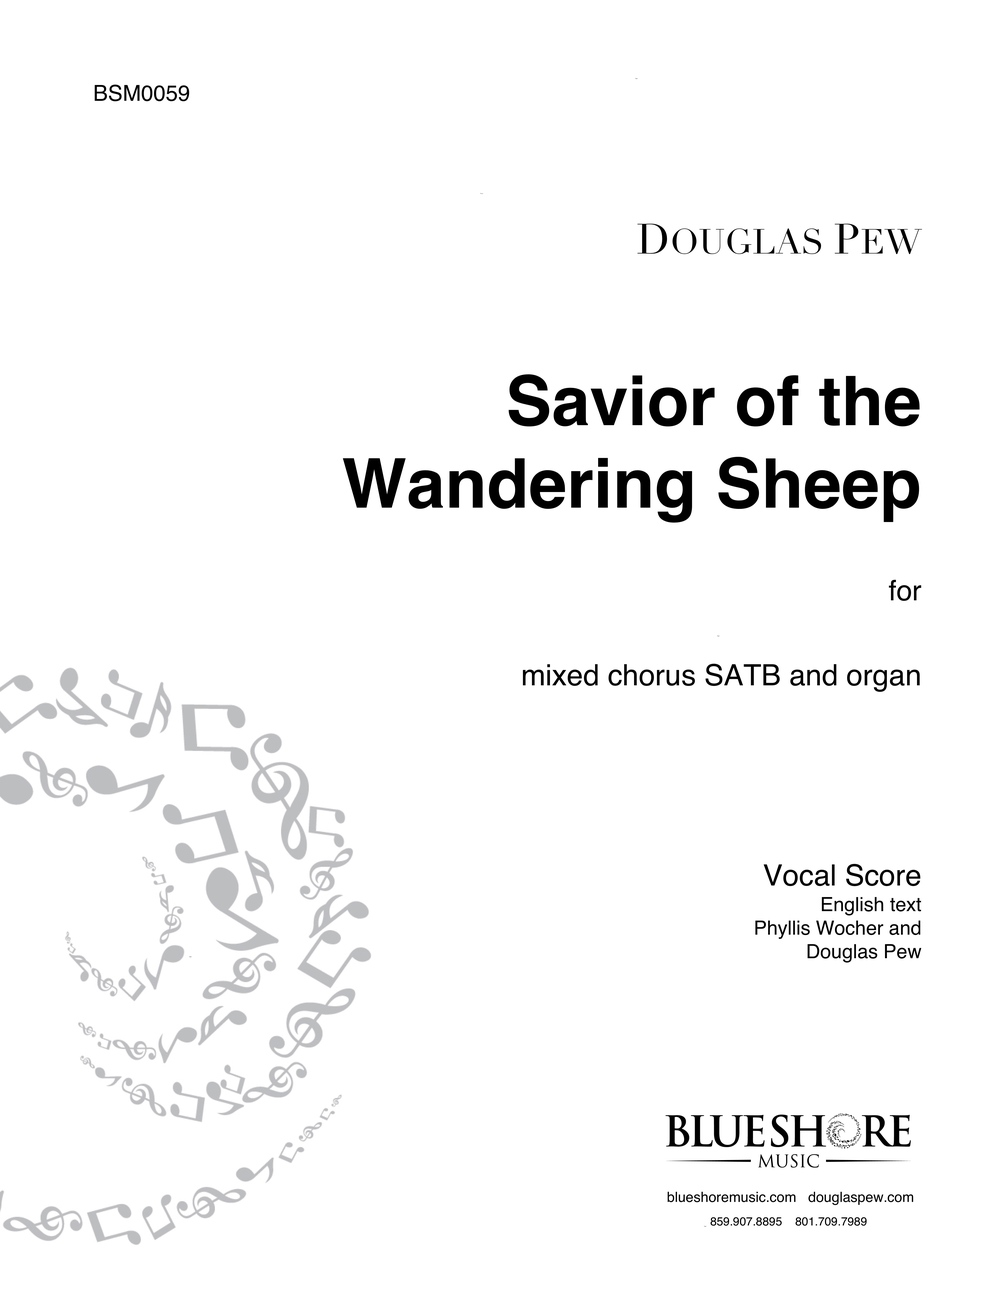 Savior of the Wandering Sheep - SATB and Organ